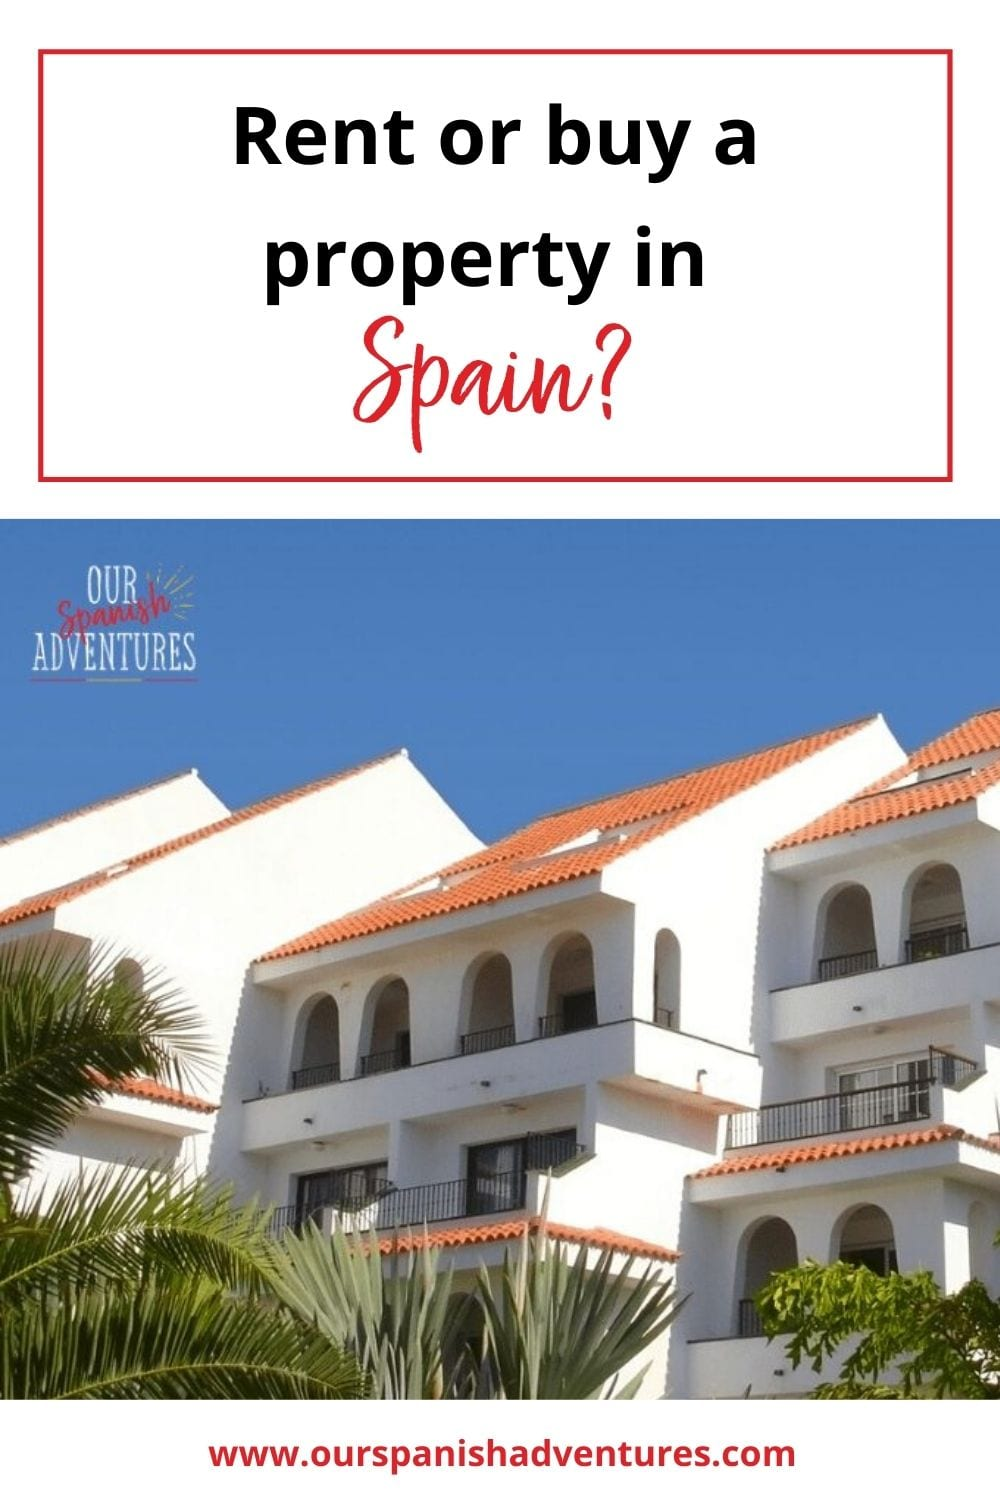 Should you rent or buy a property in Spain? | Our Spanish Adventures